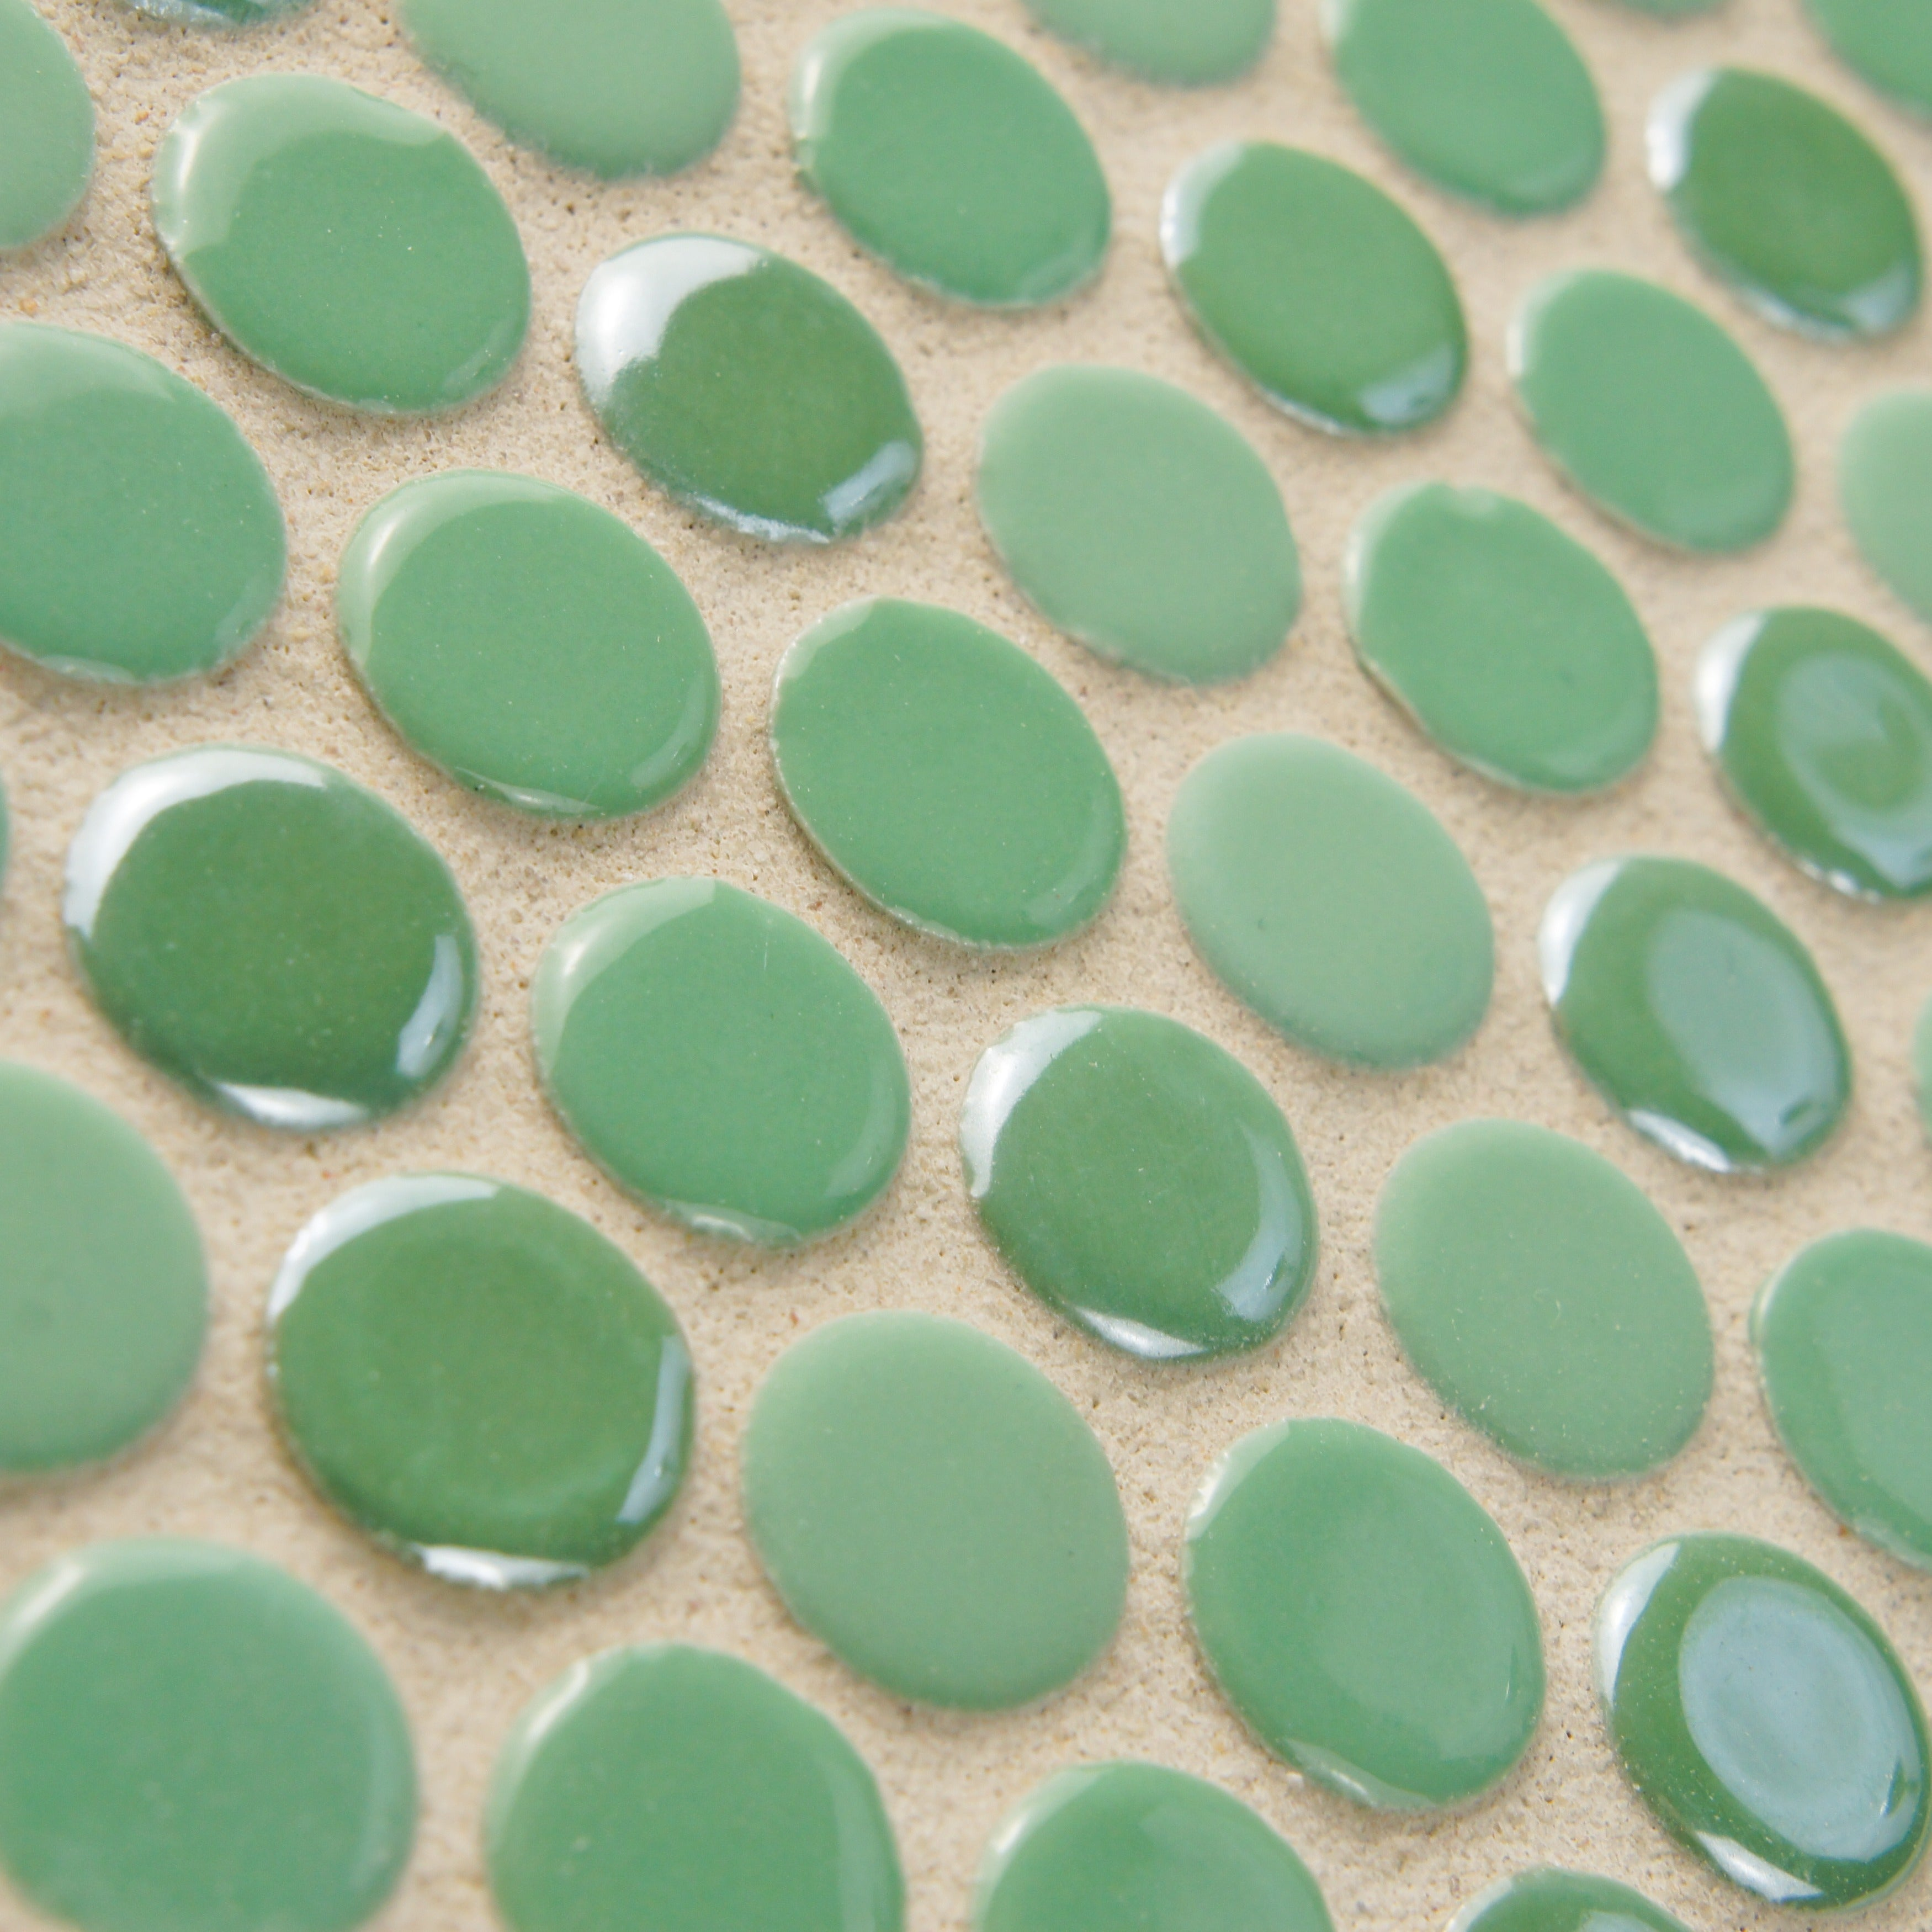 SomerTile 11.25 x 12-inch Posh Penny Round Capri Porcelain Mosaic Wall Tile  (Case of 10) - Free Shipping Today - Overstock.com - 14982509